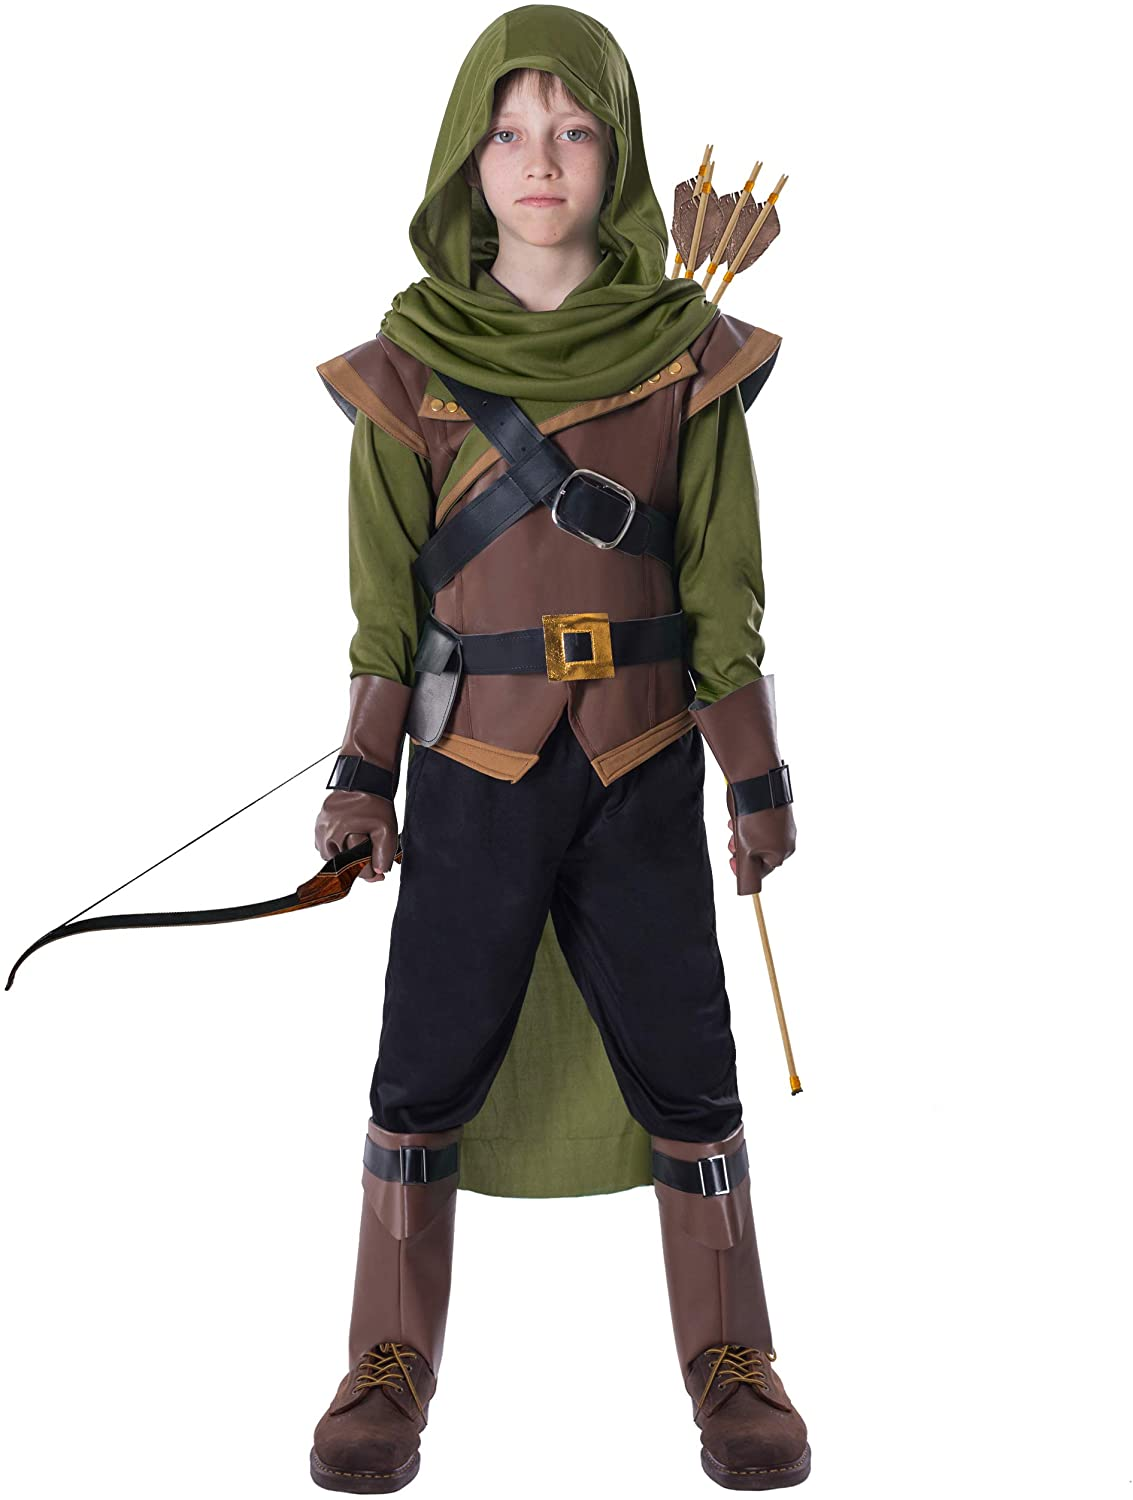 Renaissance Robin Hood Deluxe Kids Costume Set for Halloween Dress Up Party